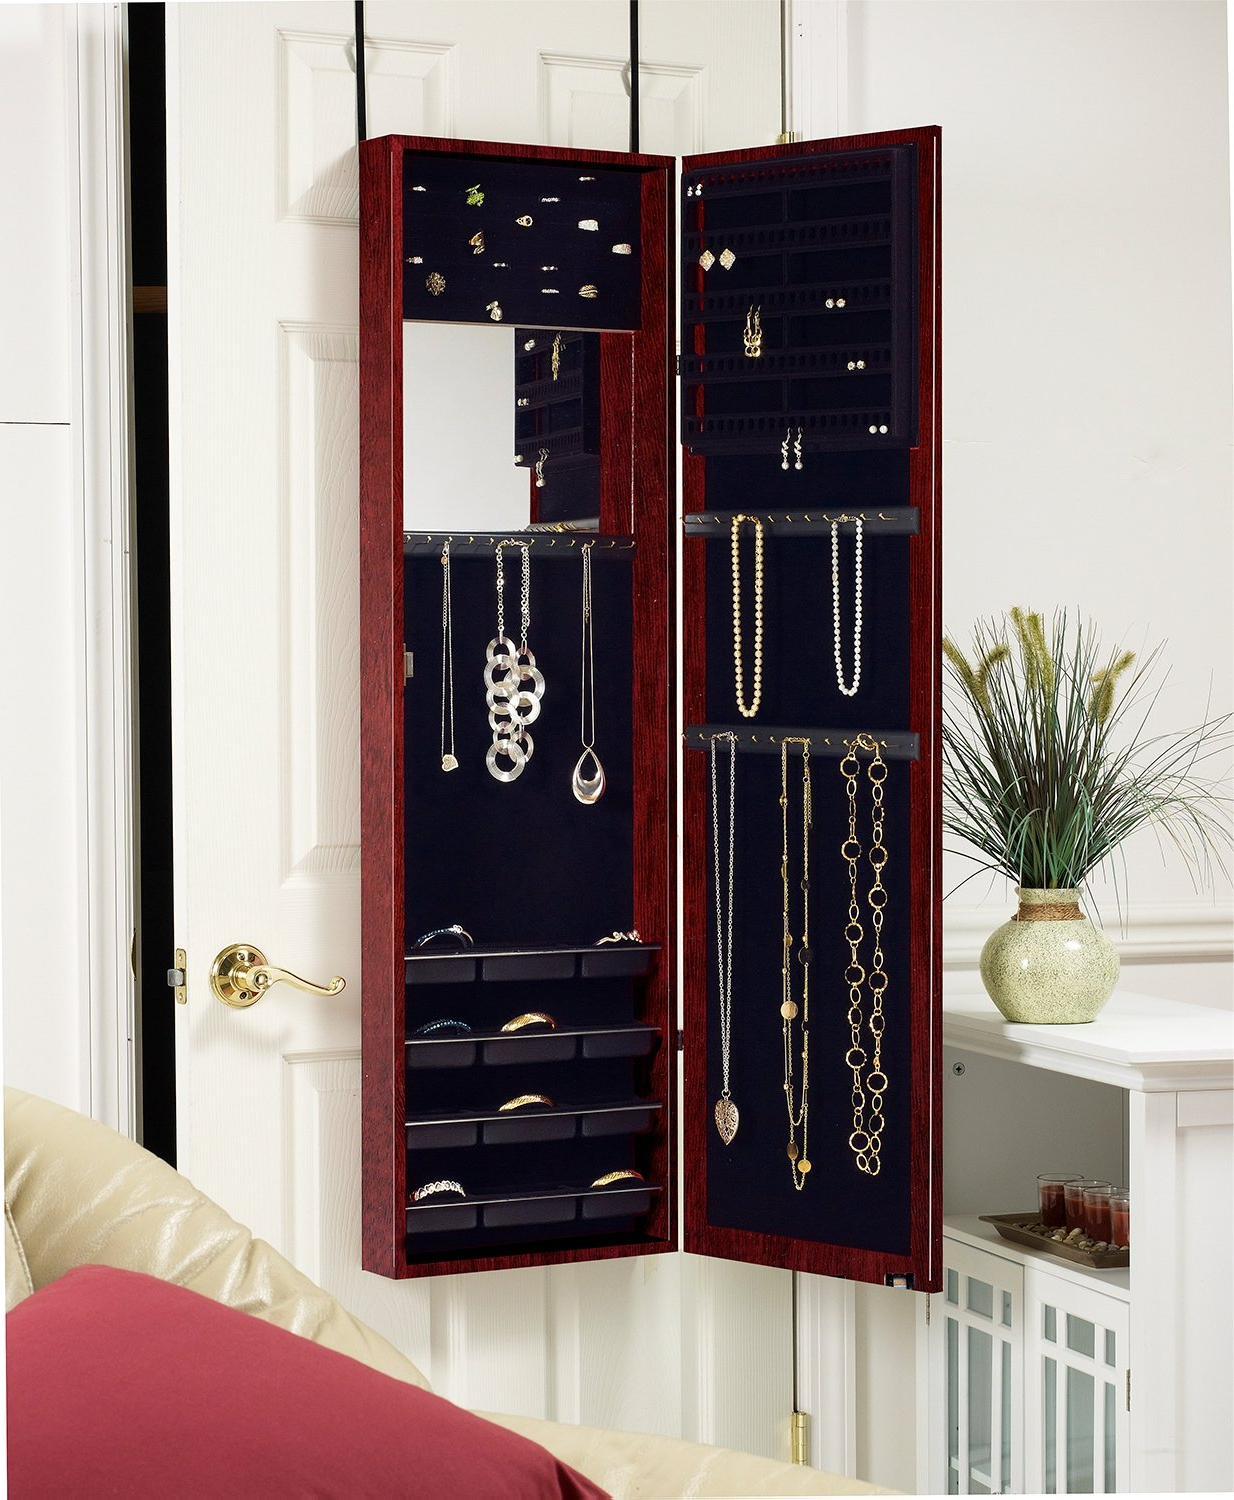 Latest Plaza Astoria Over The Door/wall Mount Jewelry Armoire With Full Length  Mirror, Lined Storage Interior, Vanity Mirror, Cherry Pertaining To Jewelry Wall Mirrors (View 10 of 20)